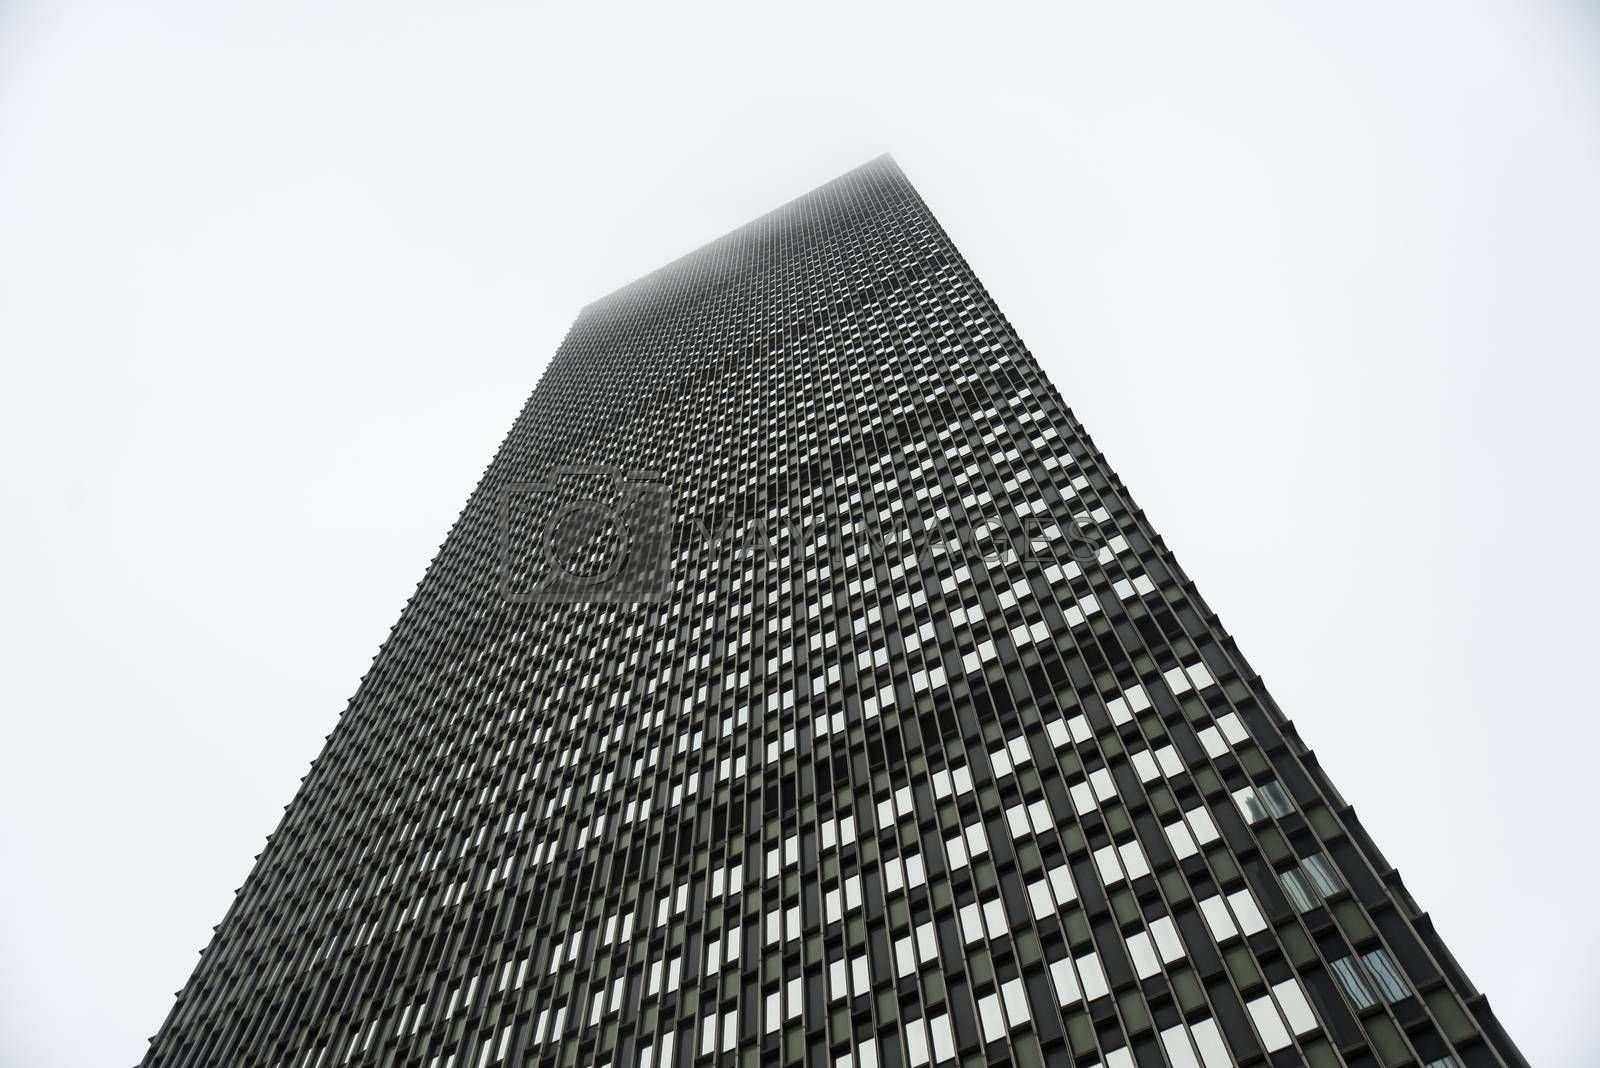 The skylione of Prudential Tower in Boston ME, USA